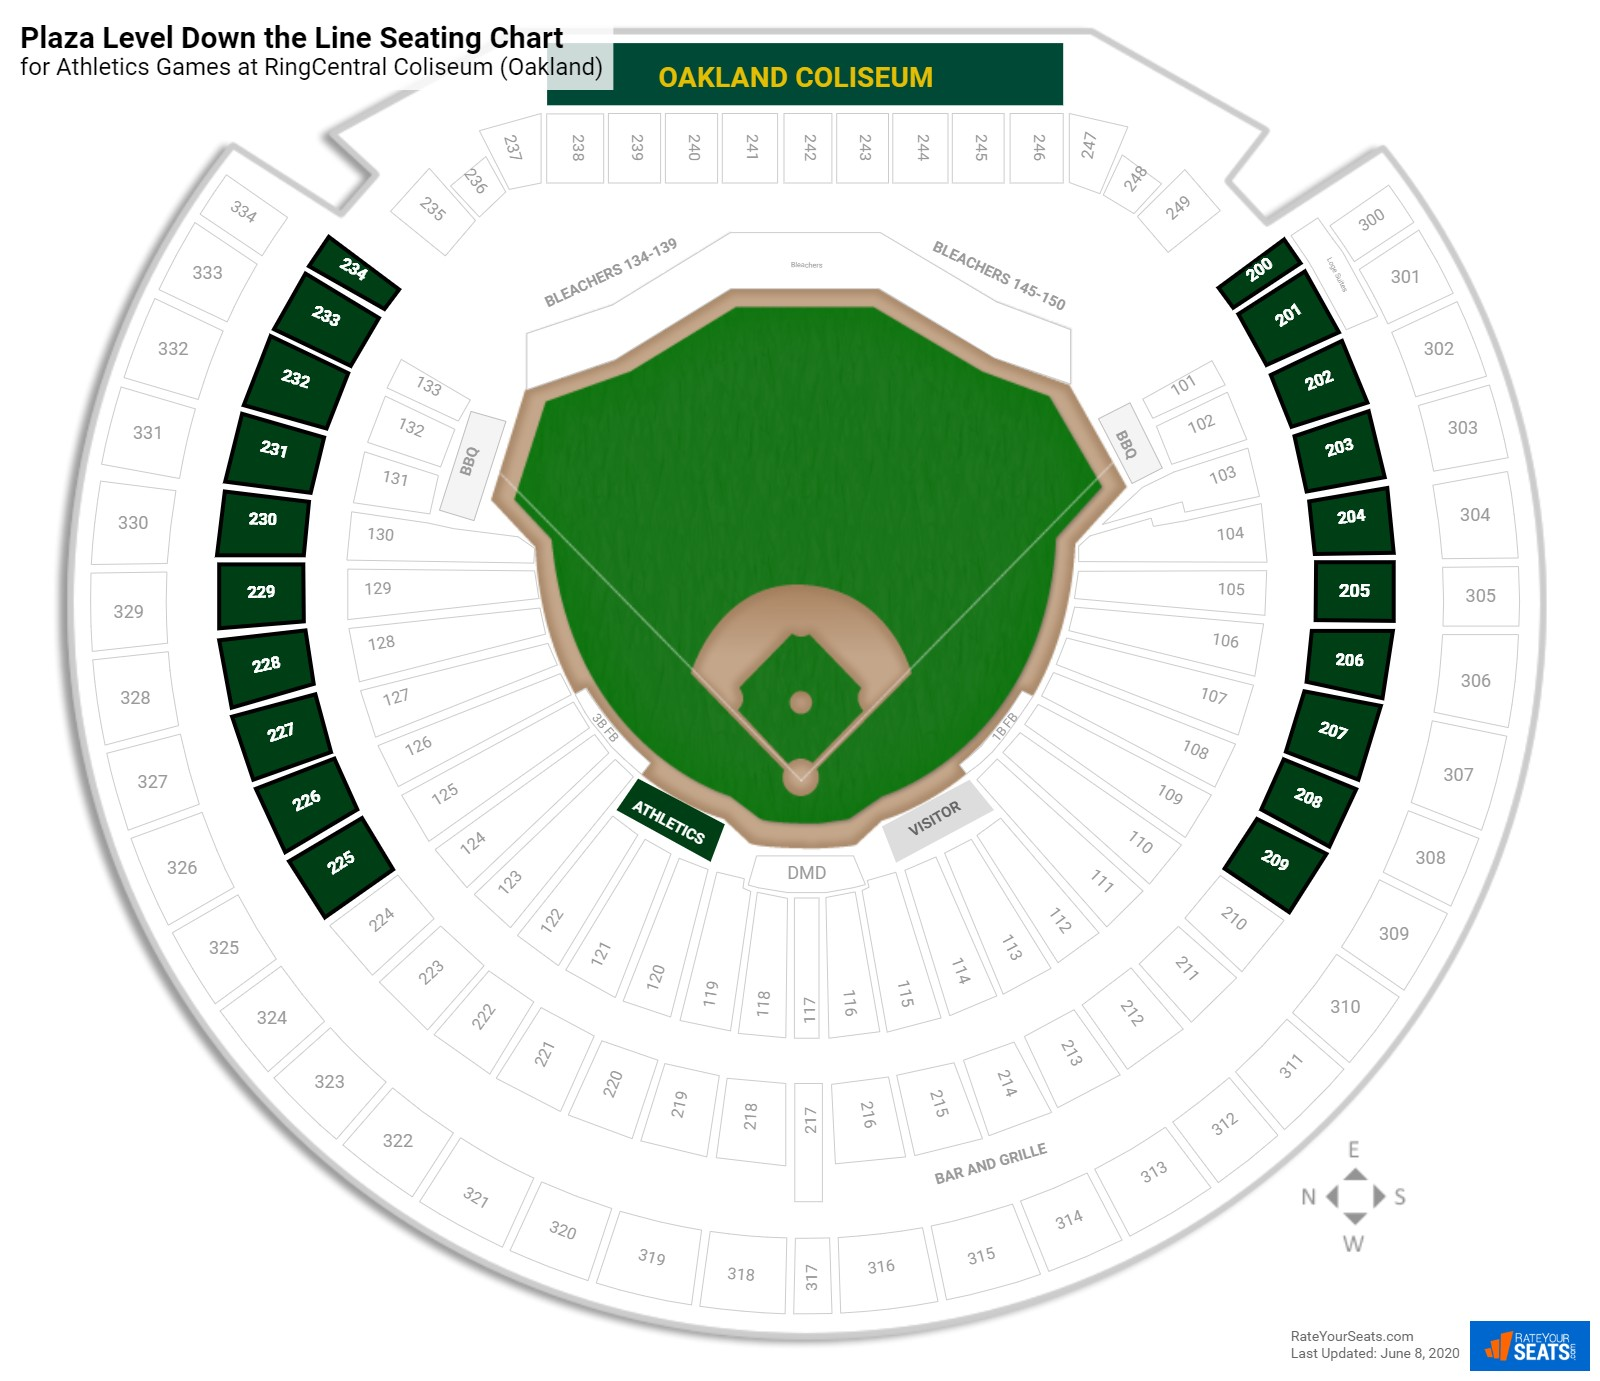 Oakland Coliseum Plaza Level Down the Line seating chart